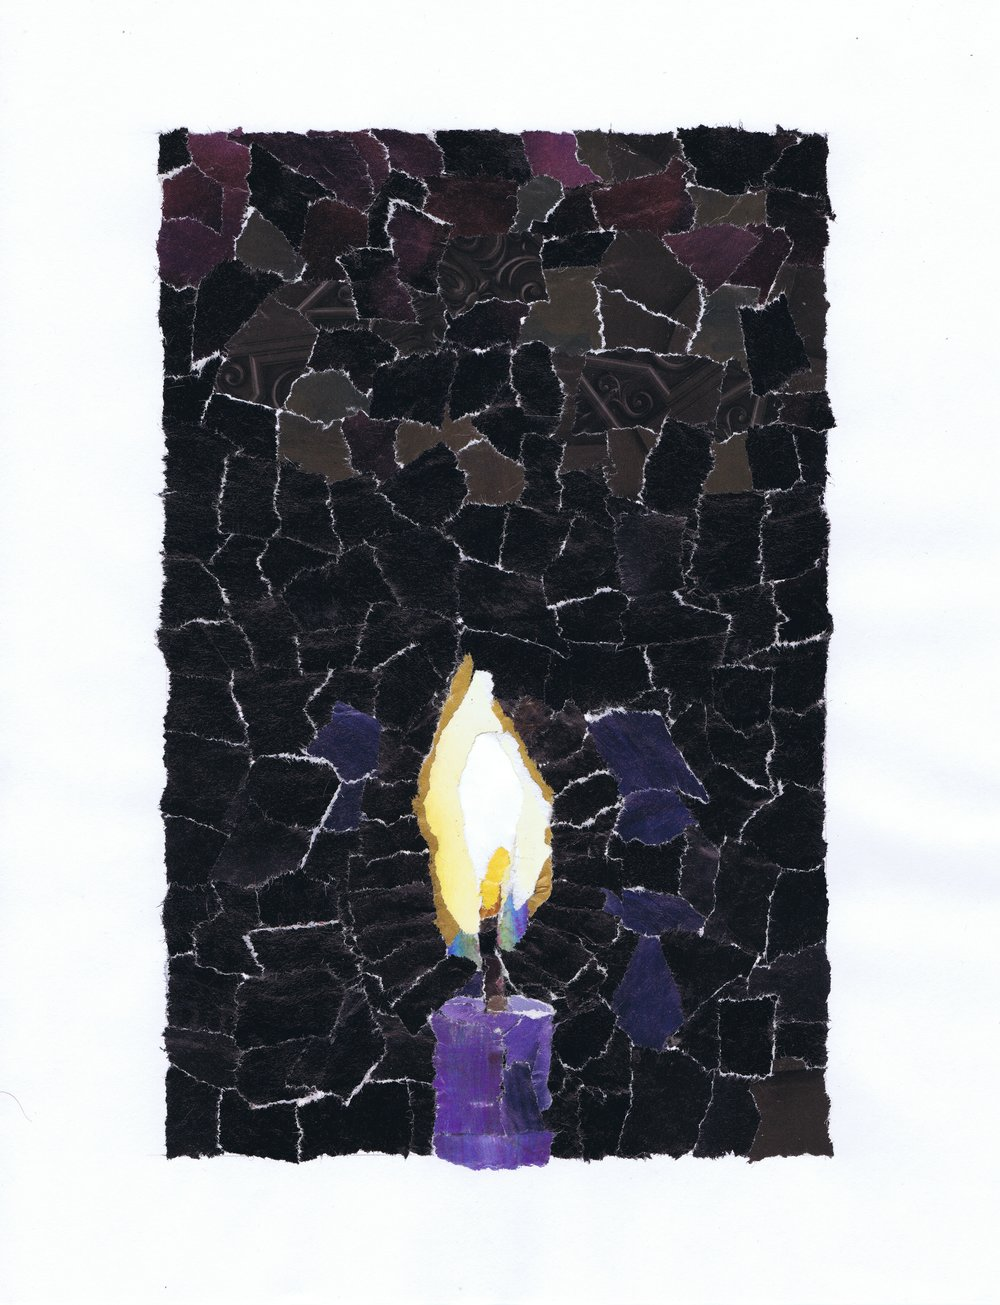 Advent 1 by Carol Amidi, used with permission.